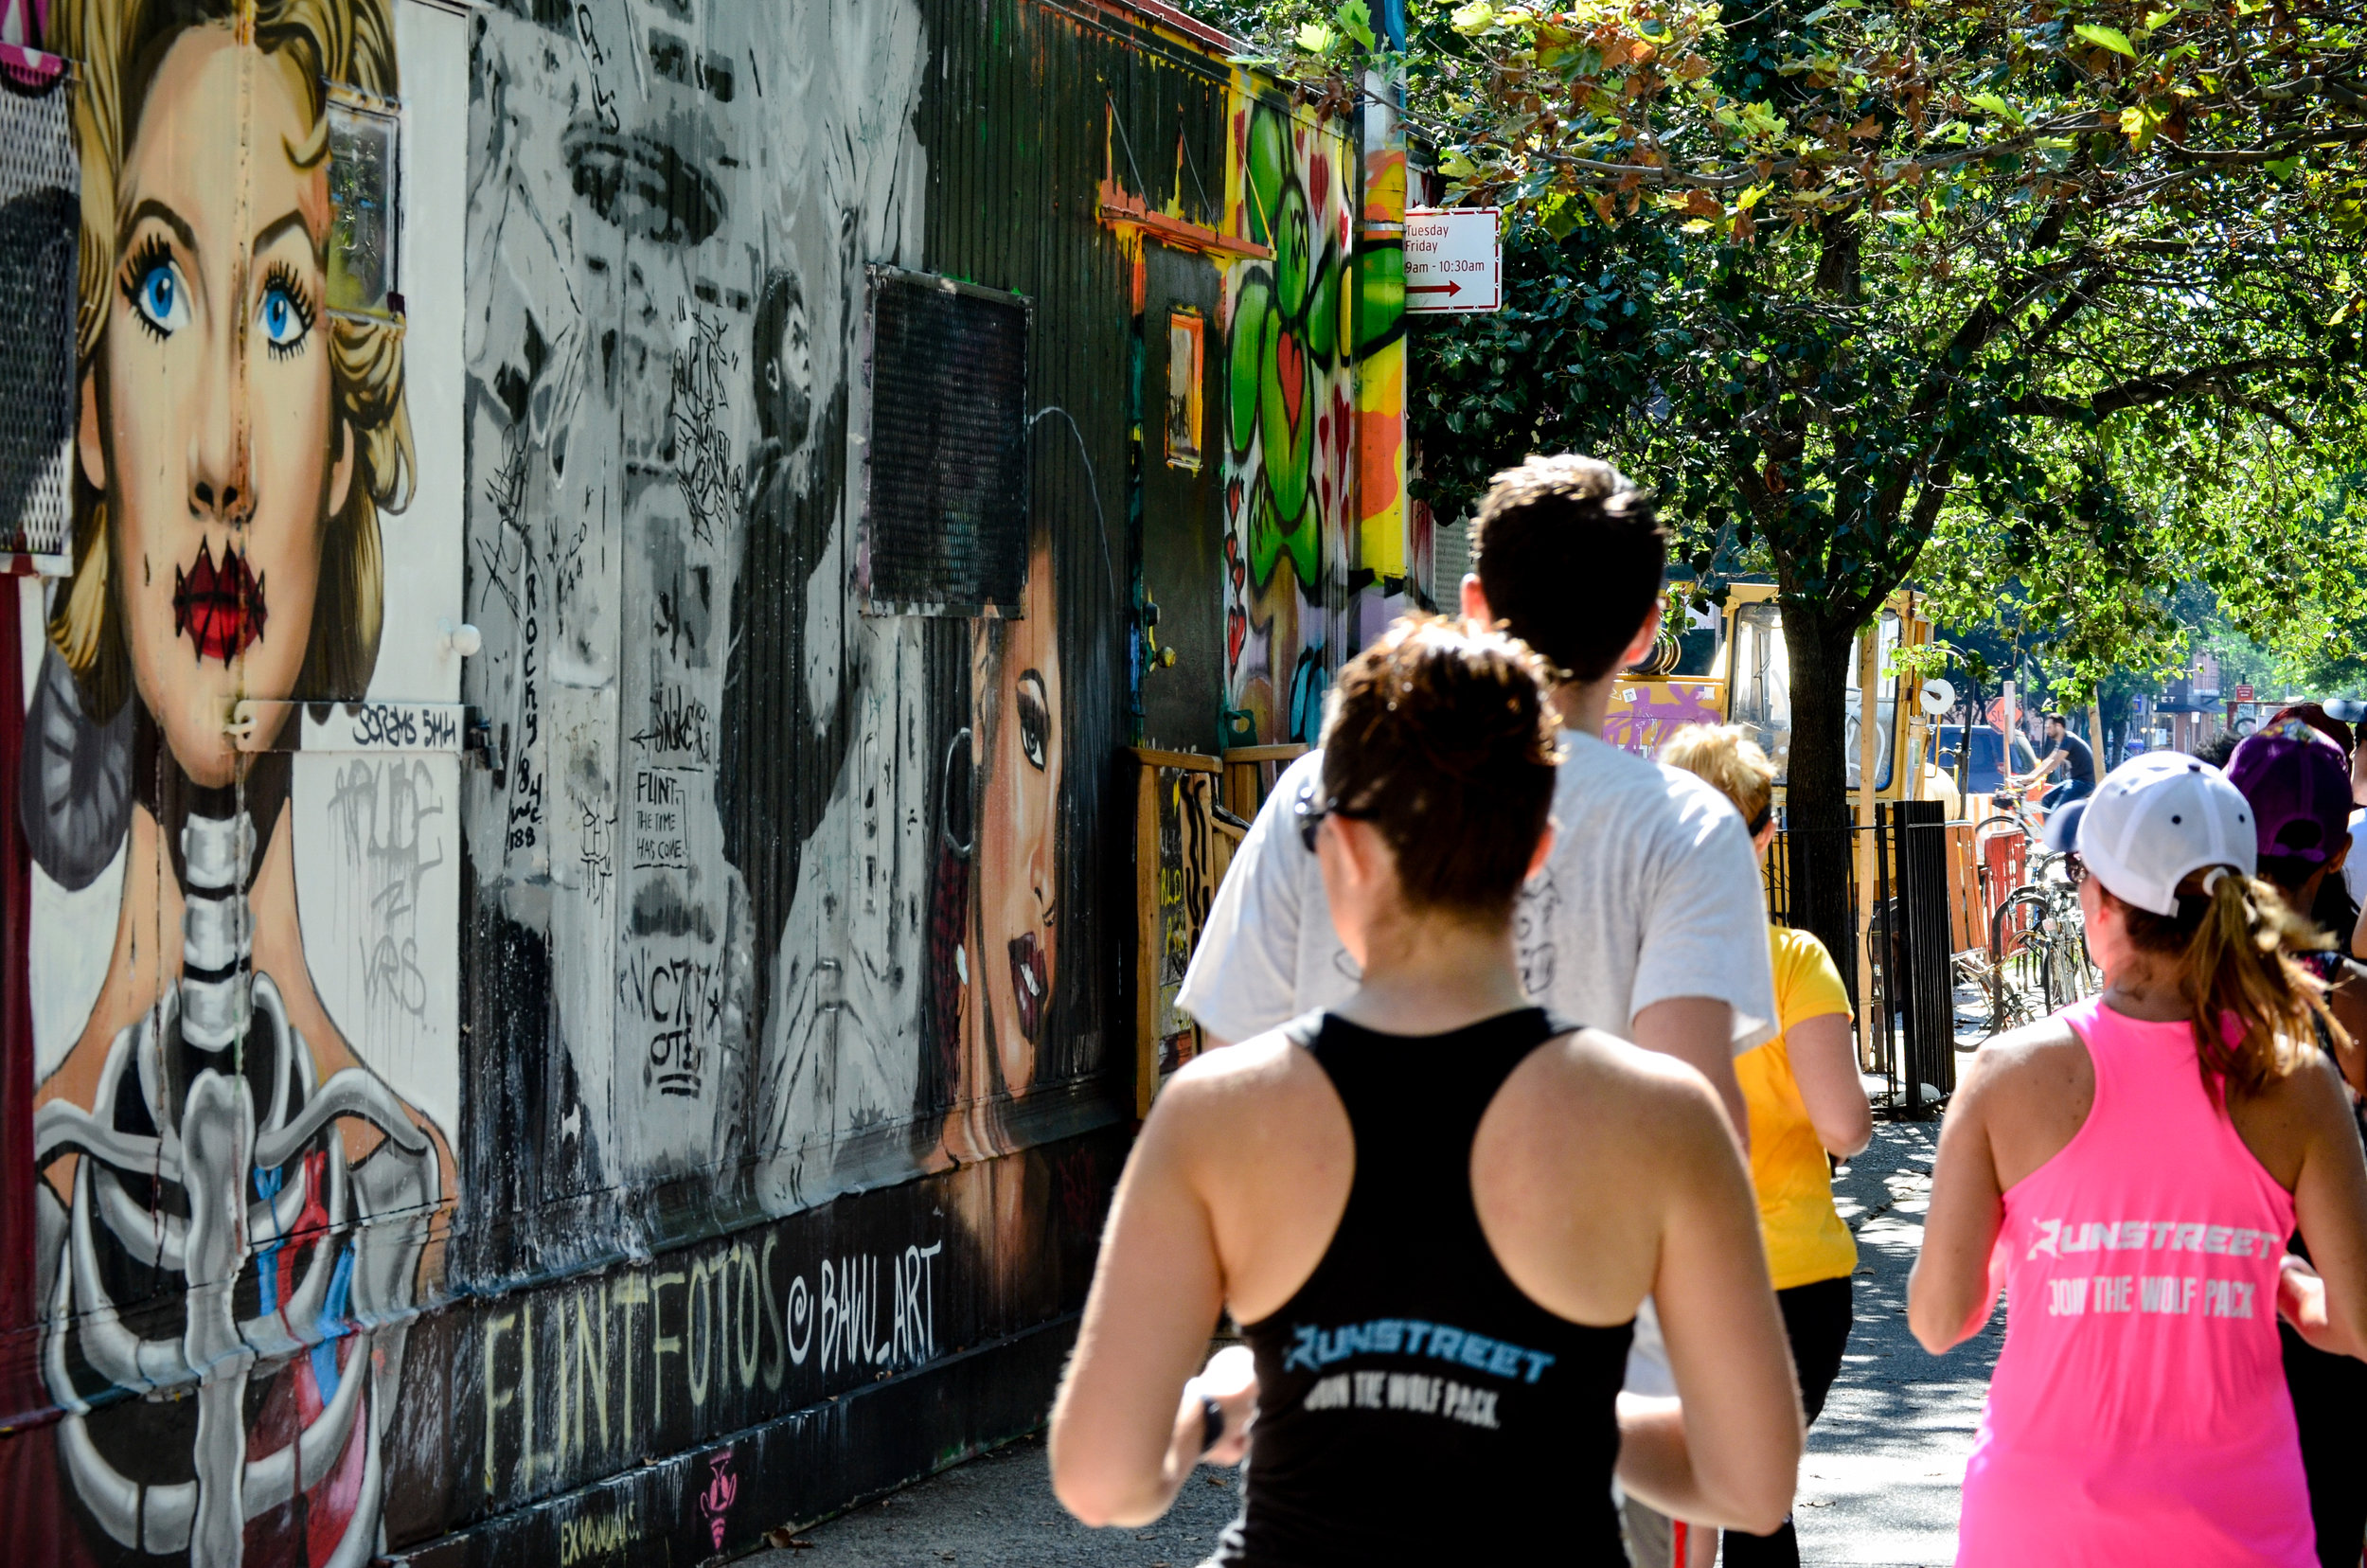 Running by  Centre-fuge Public Art Project .